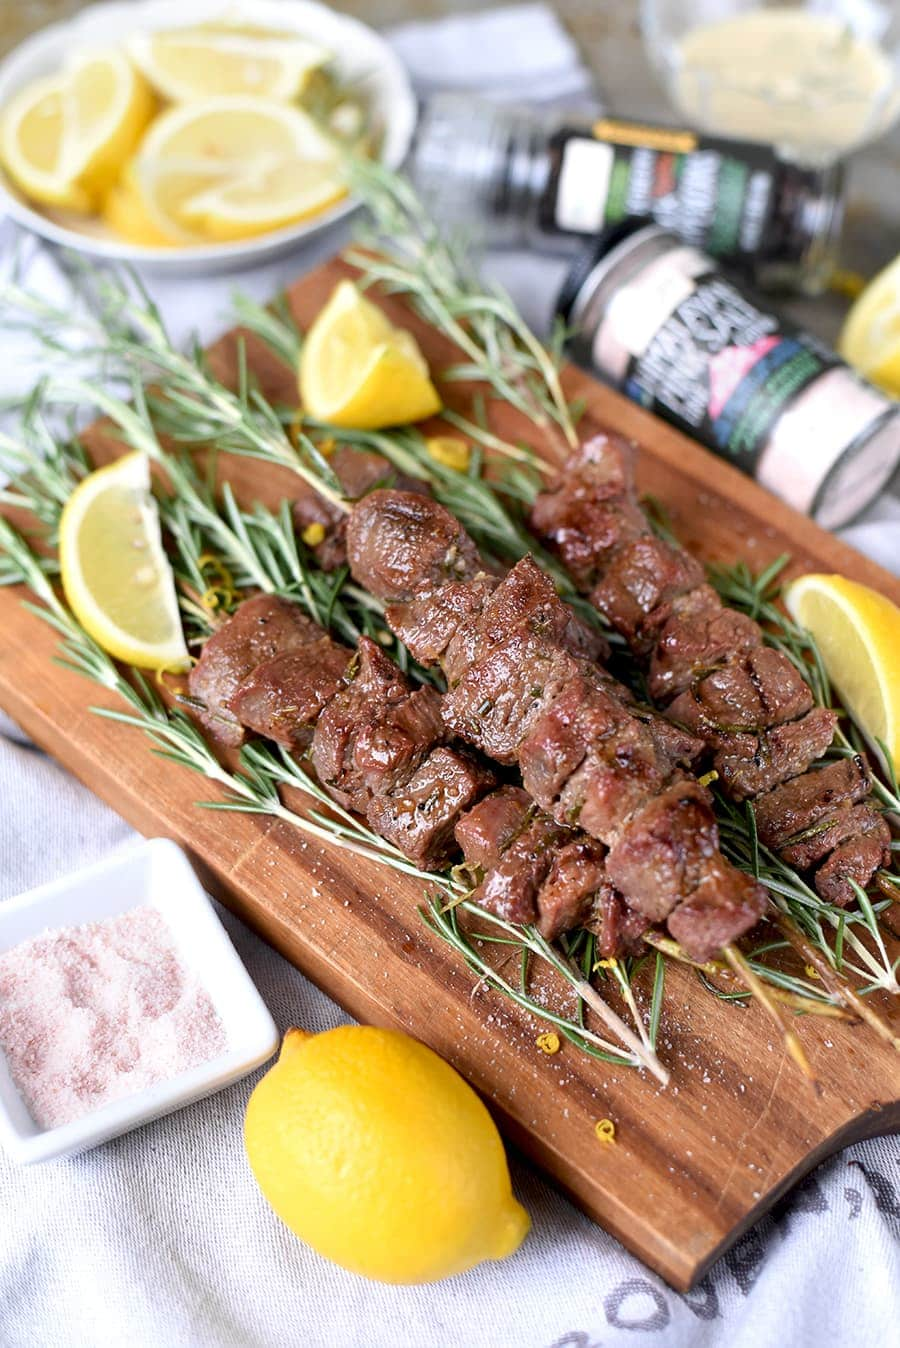 Lamb Rosemary Skewers with Pink Himilayan Salt 0748 Web - Grilled Rosemary Lamb Skewers with Himalayan Pink Salt